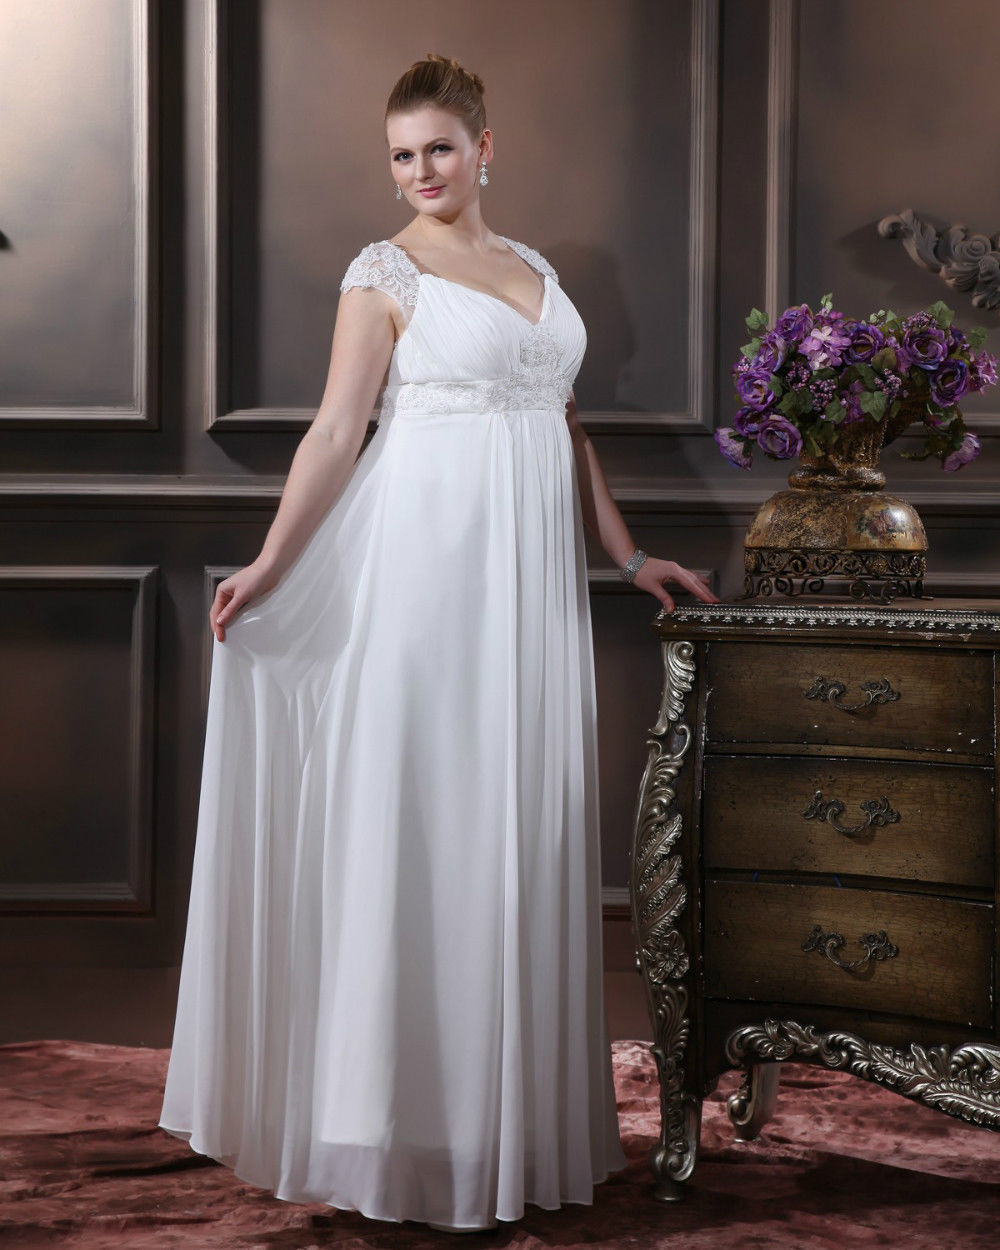 2015 New PLUS SIZE A-line V-neck Chiffon Satin Wedding Dress Bridal Gown Appliques sweep sleeveless vestidos de novia 2D137 - ebelz forever store